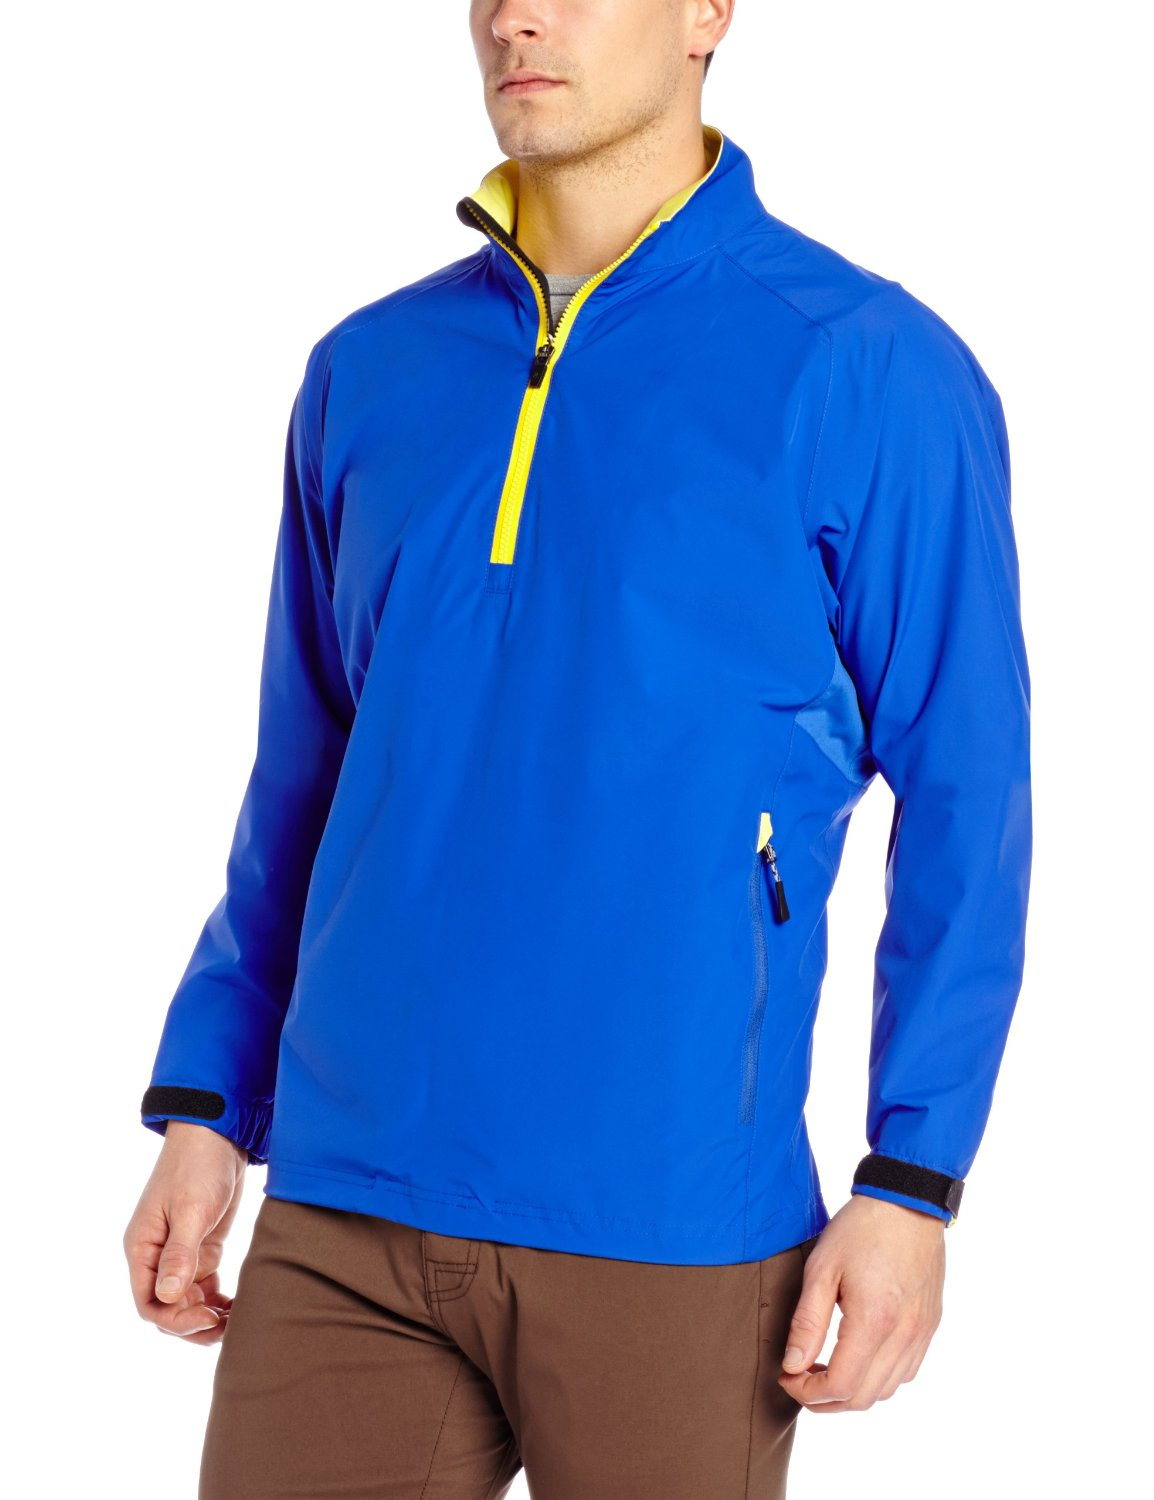 Mens Zero Restriction Power Torque Golf Rain Jackets